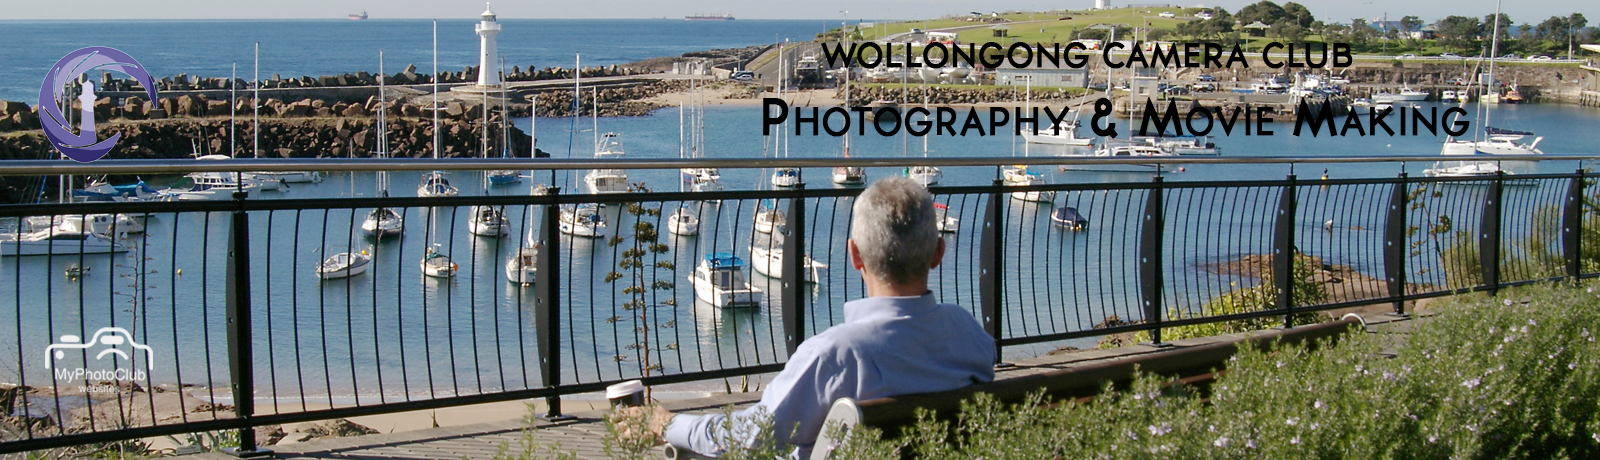 Wollongong Camera Club